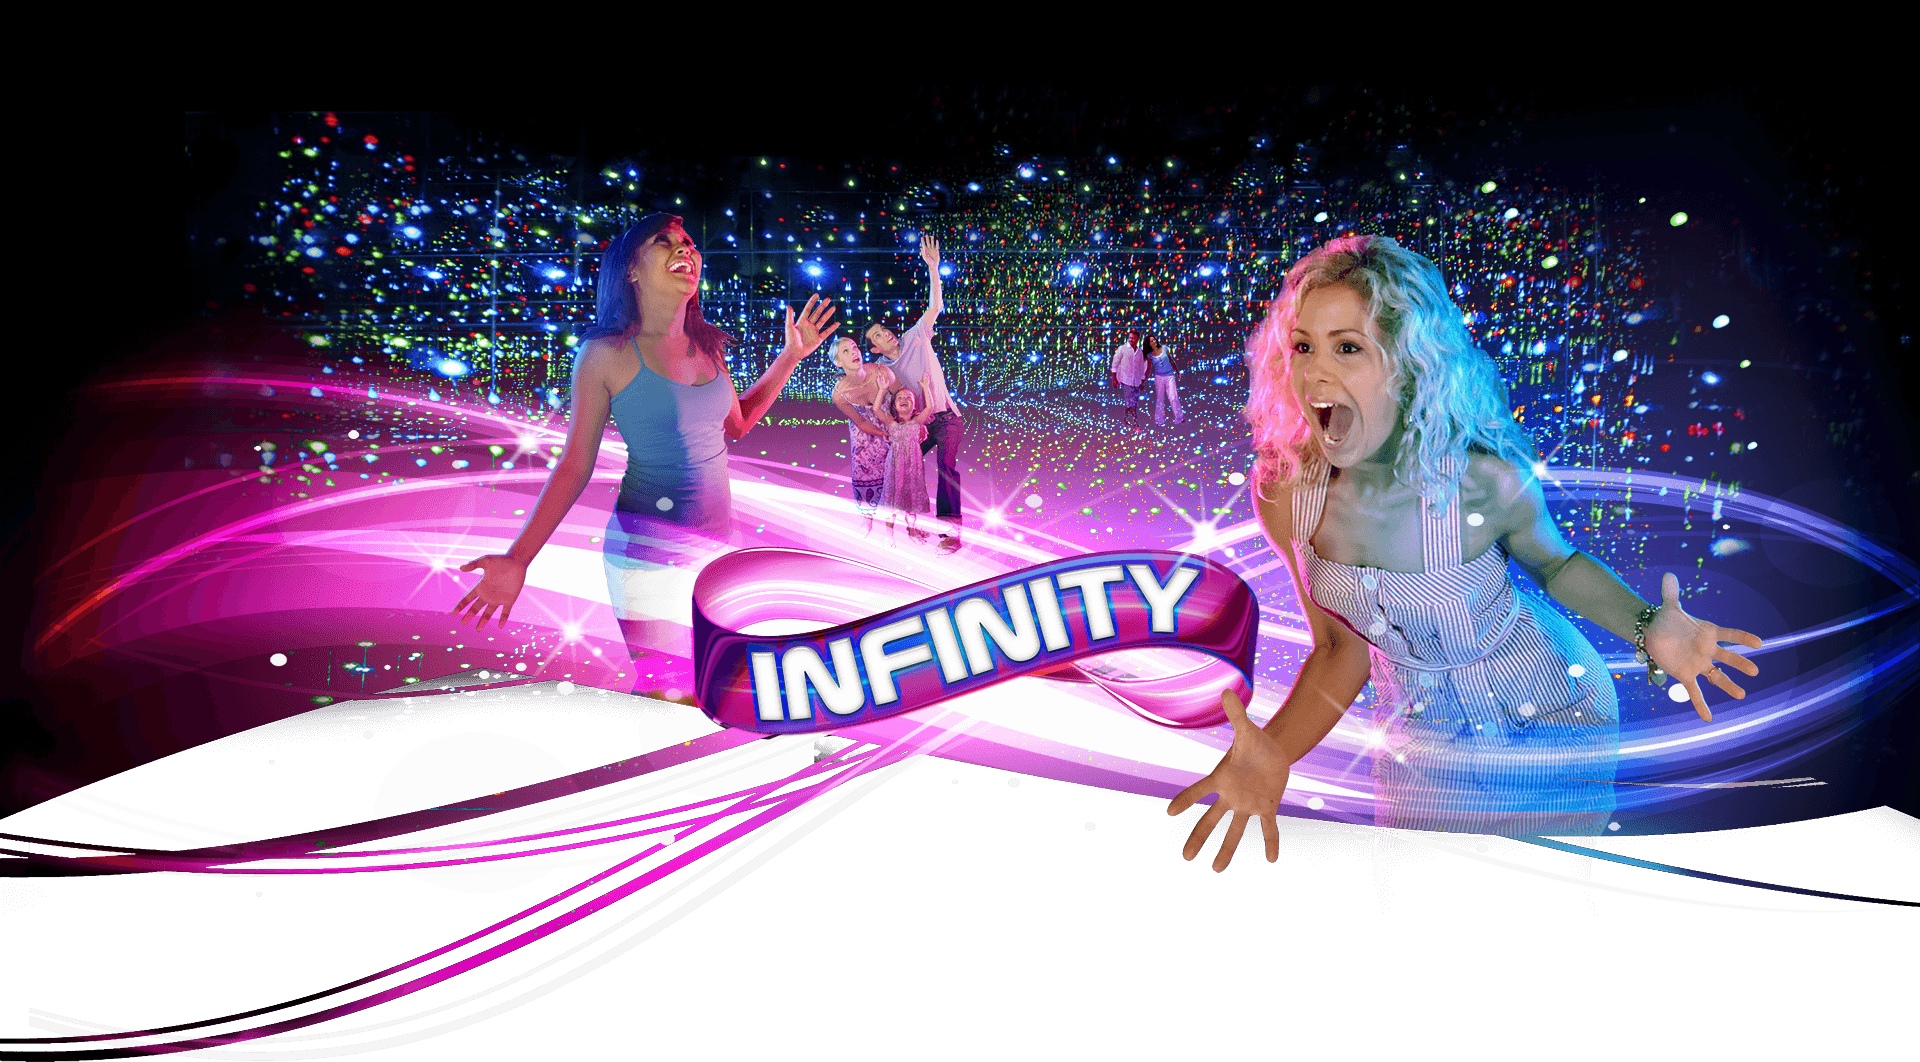 Kids parties gold coast | Infinity